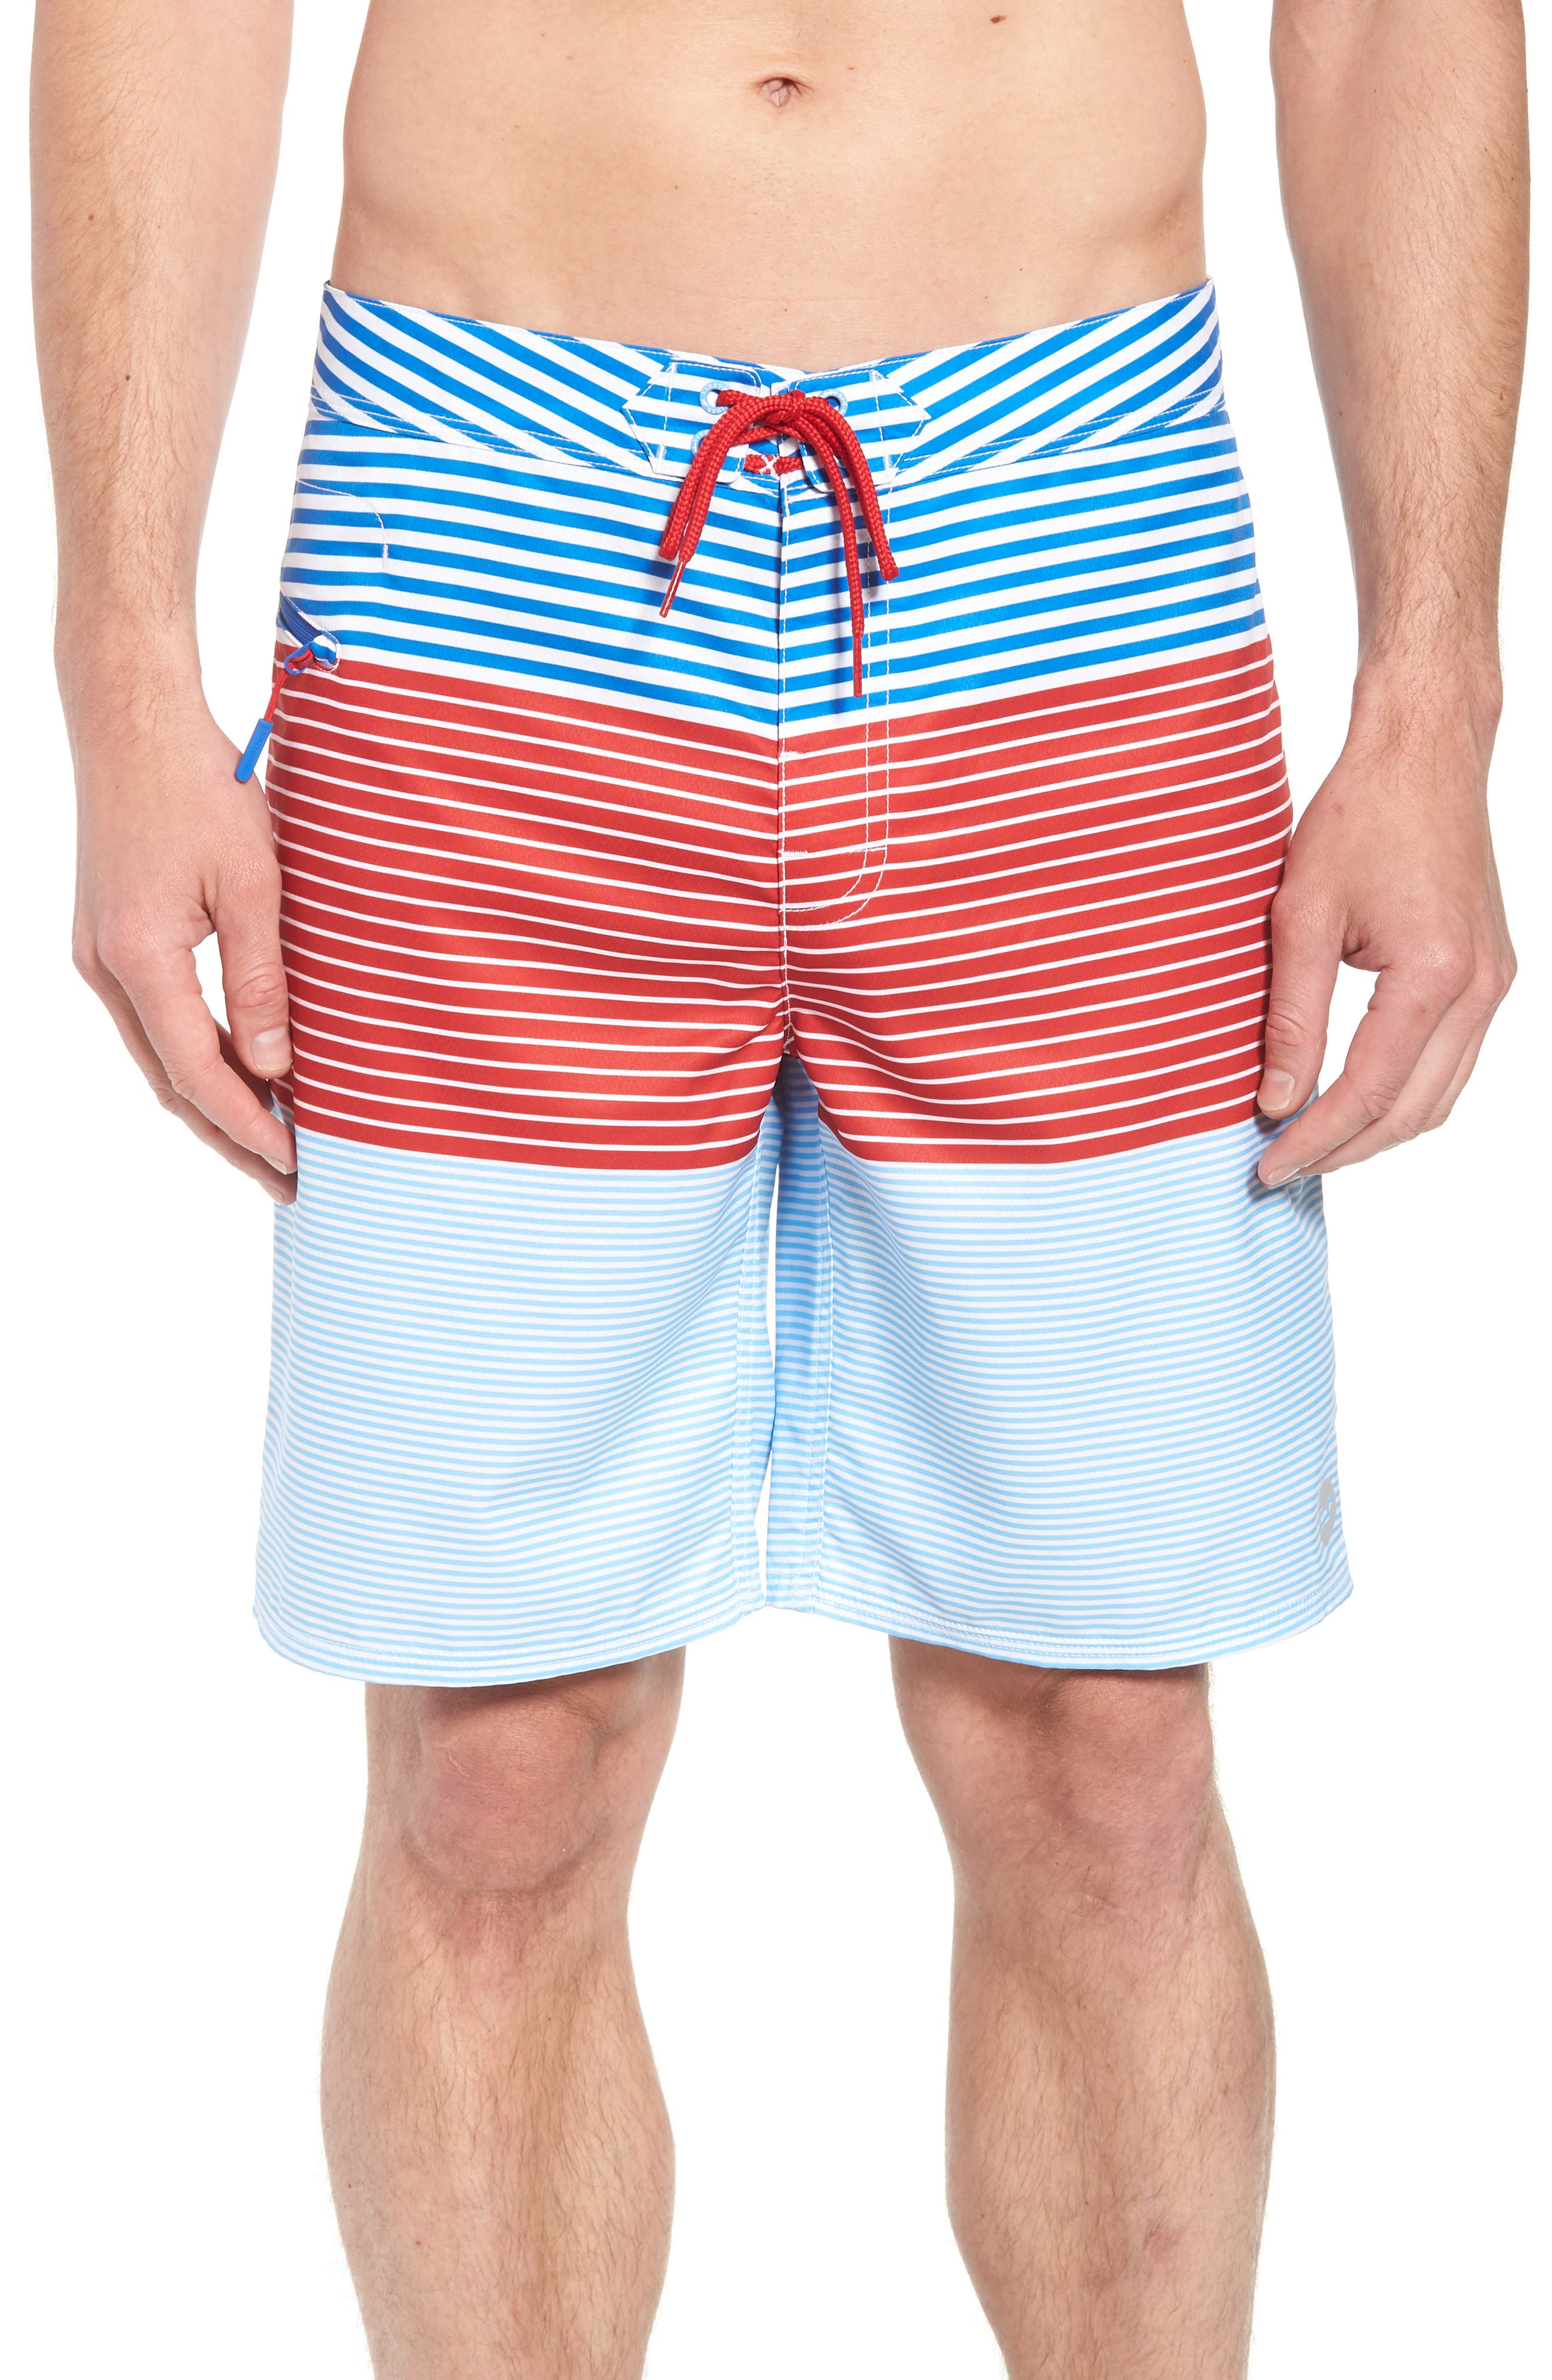 Whale Harbor Stripe Board Shorts,                         Main,                         color, 427